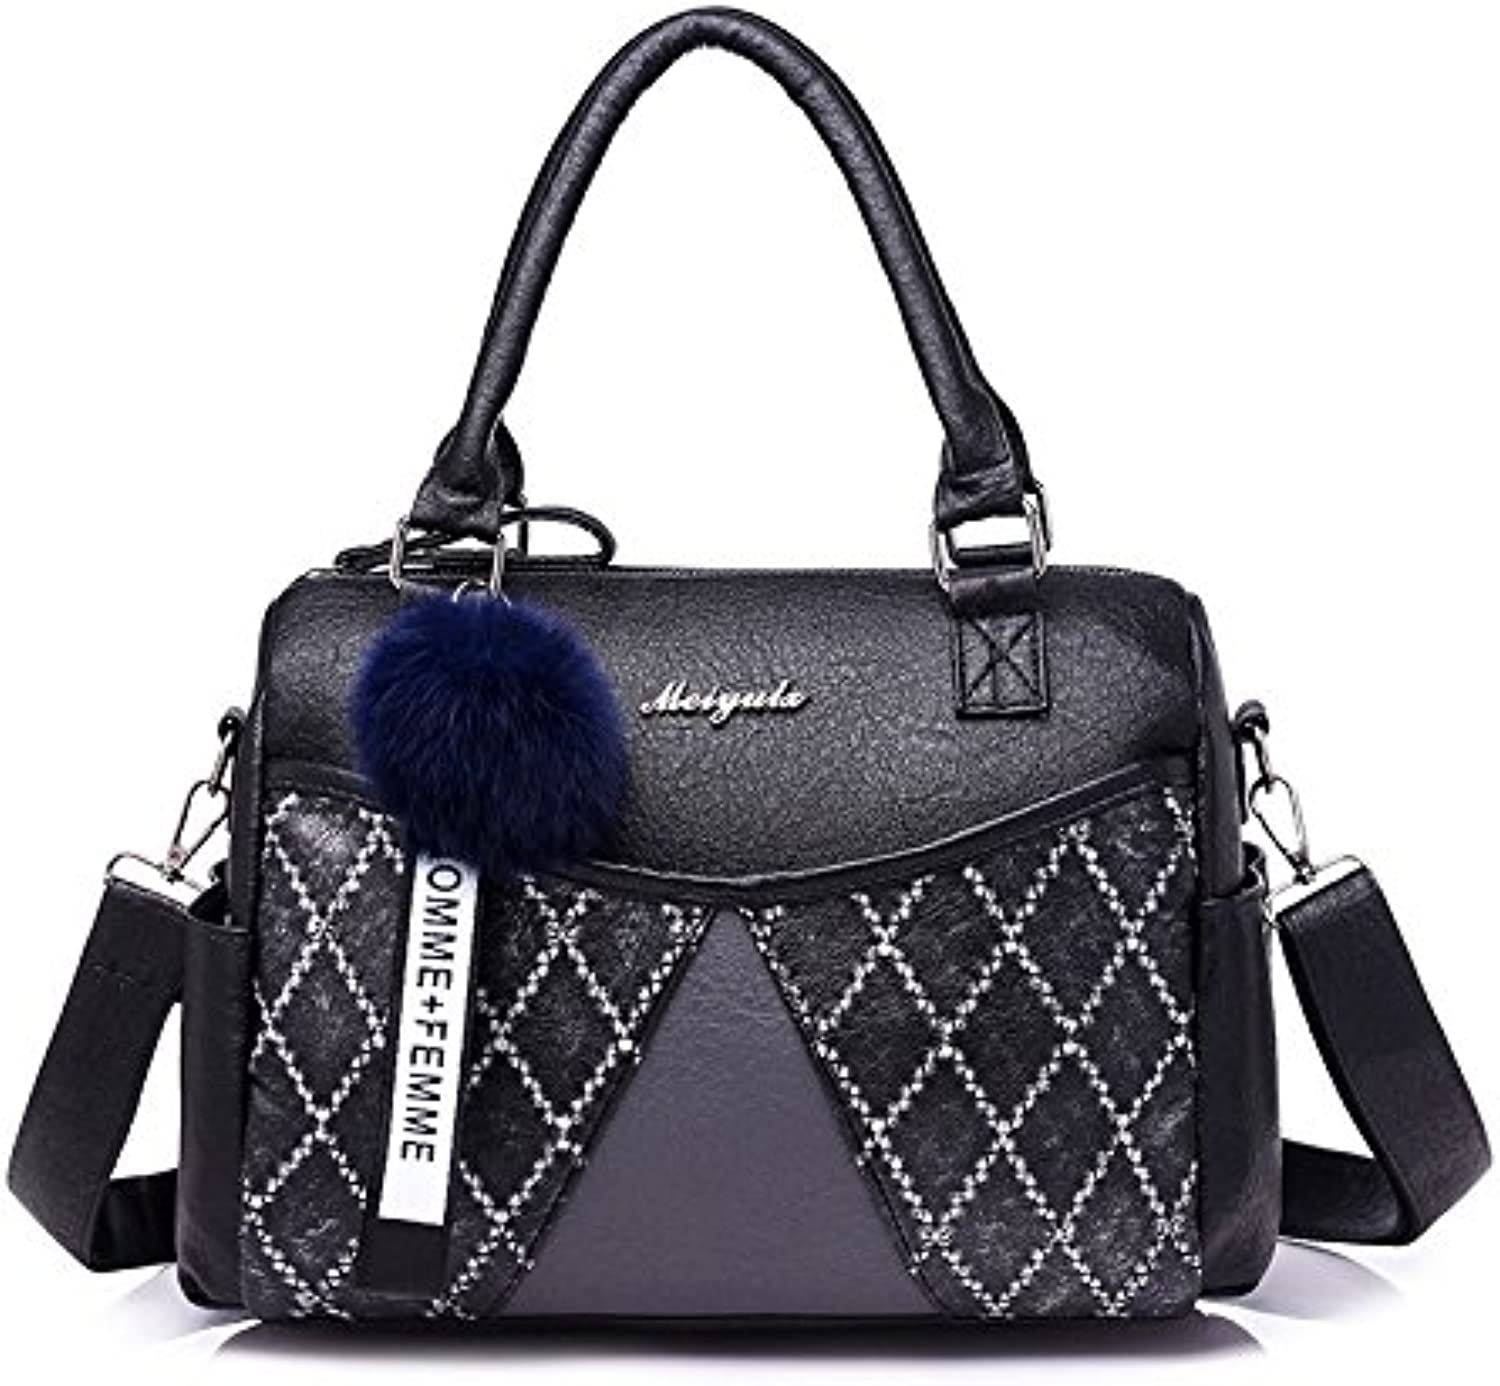 AI BAO Lady Tote Bag Boston Bag Temperament Shoulder Bag Diagonal Bag